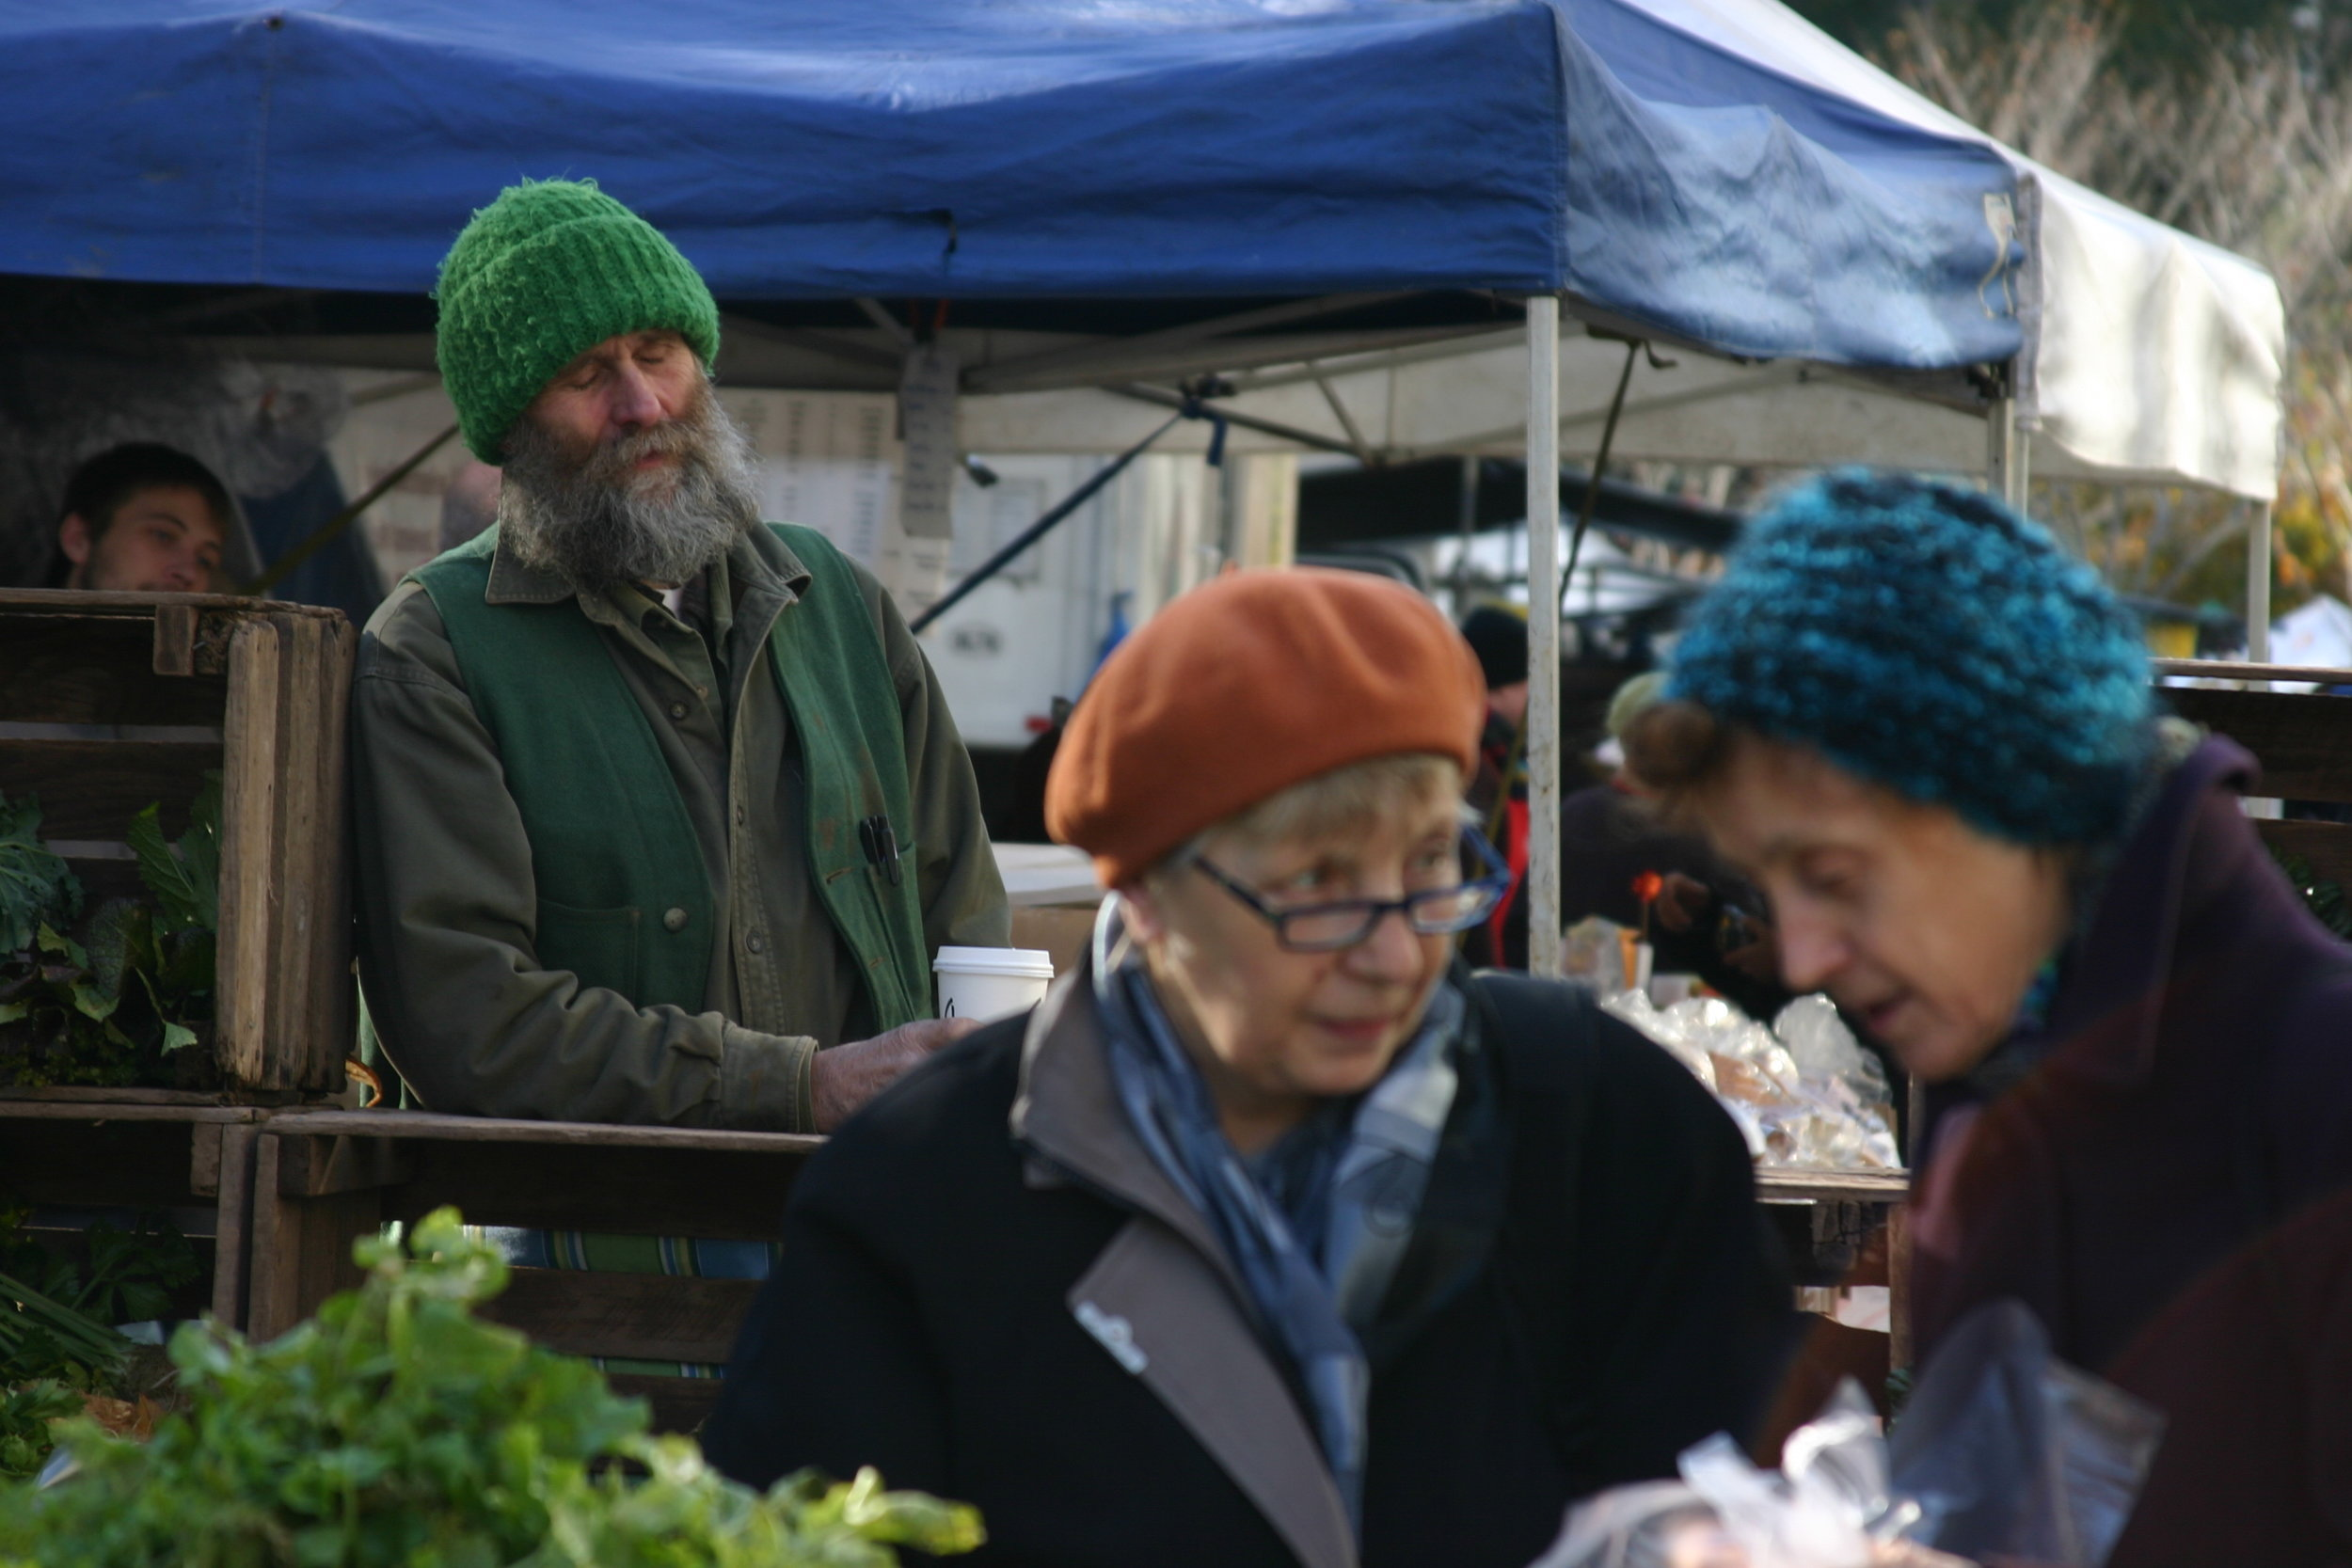 Union Square market, New York, Fall 2011, Photo Credit: Kate Gallery